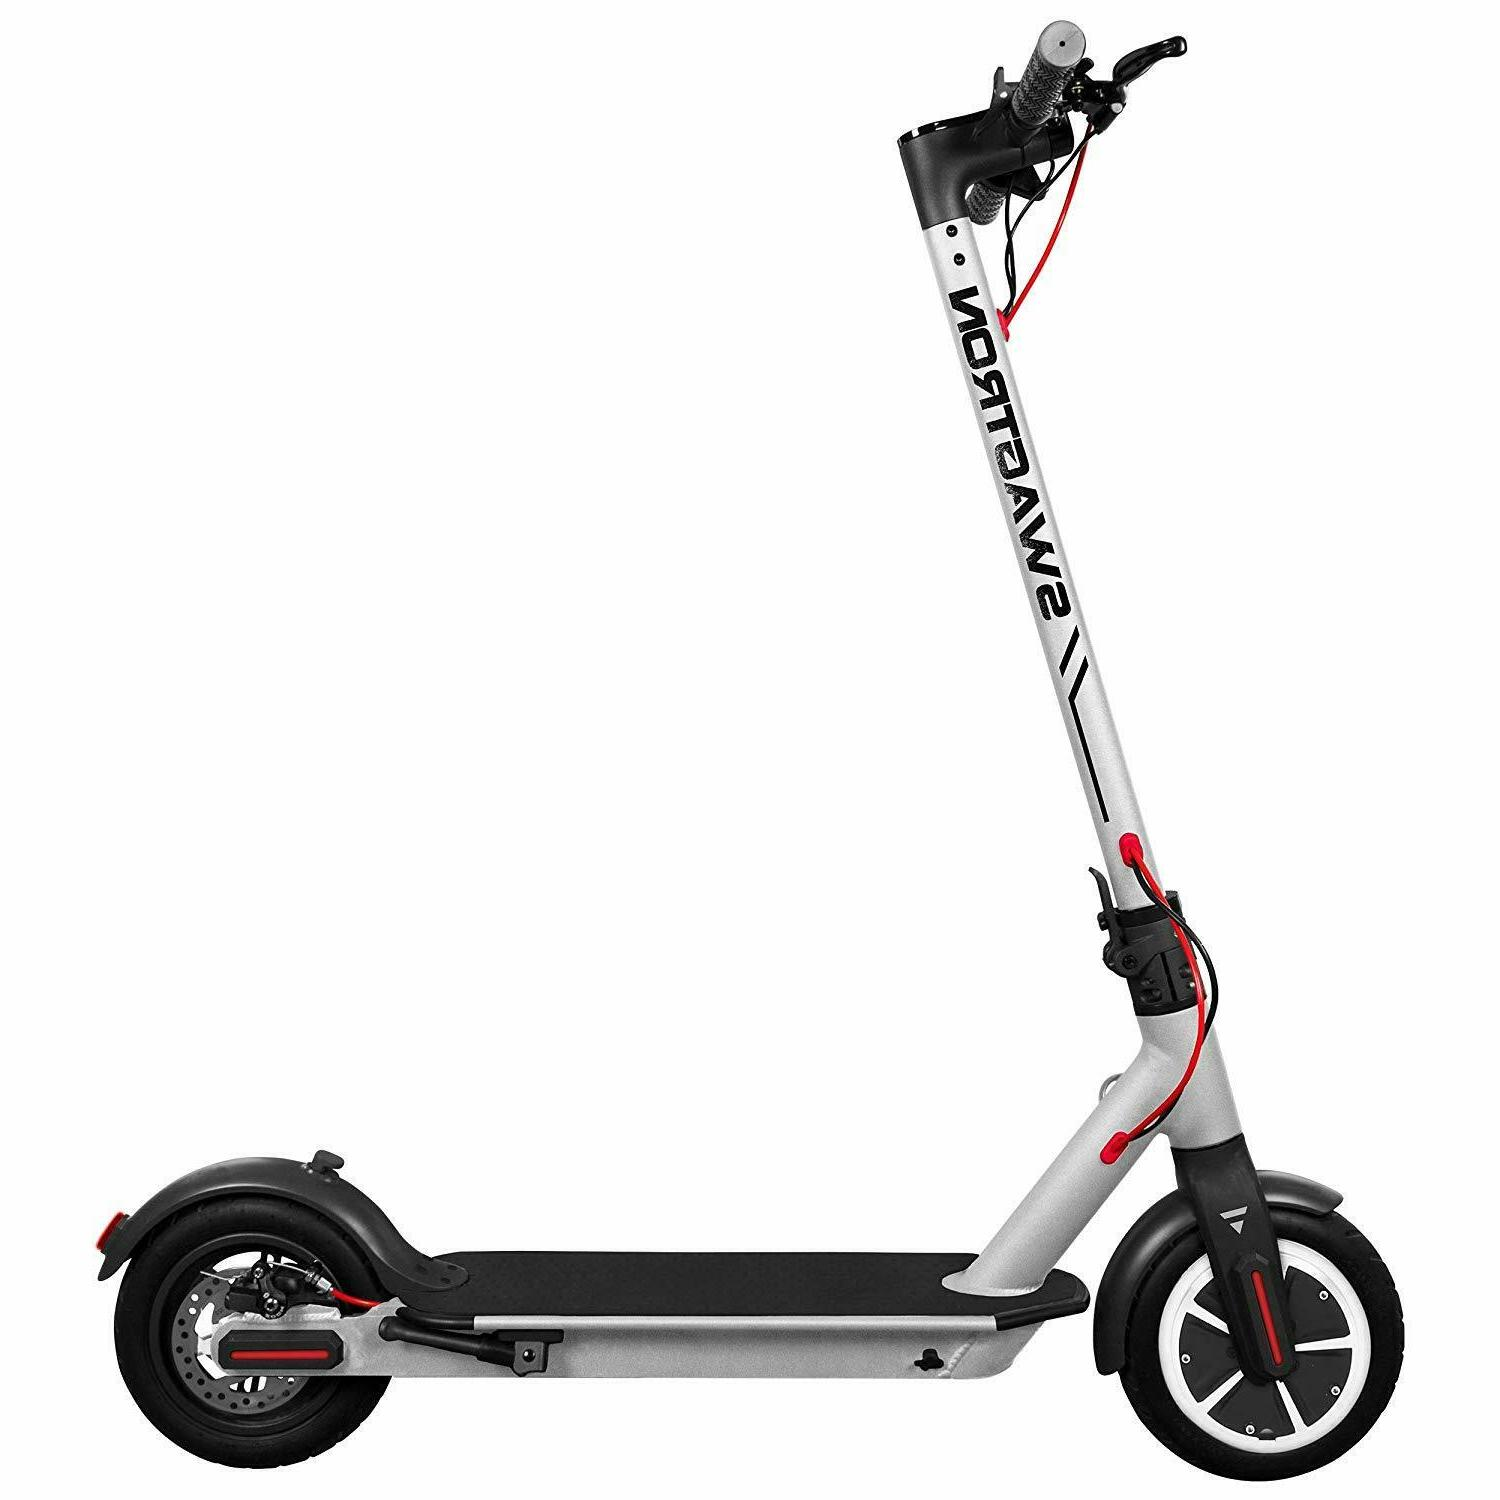 Swagtron Swagger 5 Speed Control Portable Folding